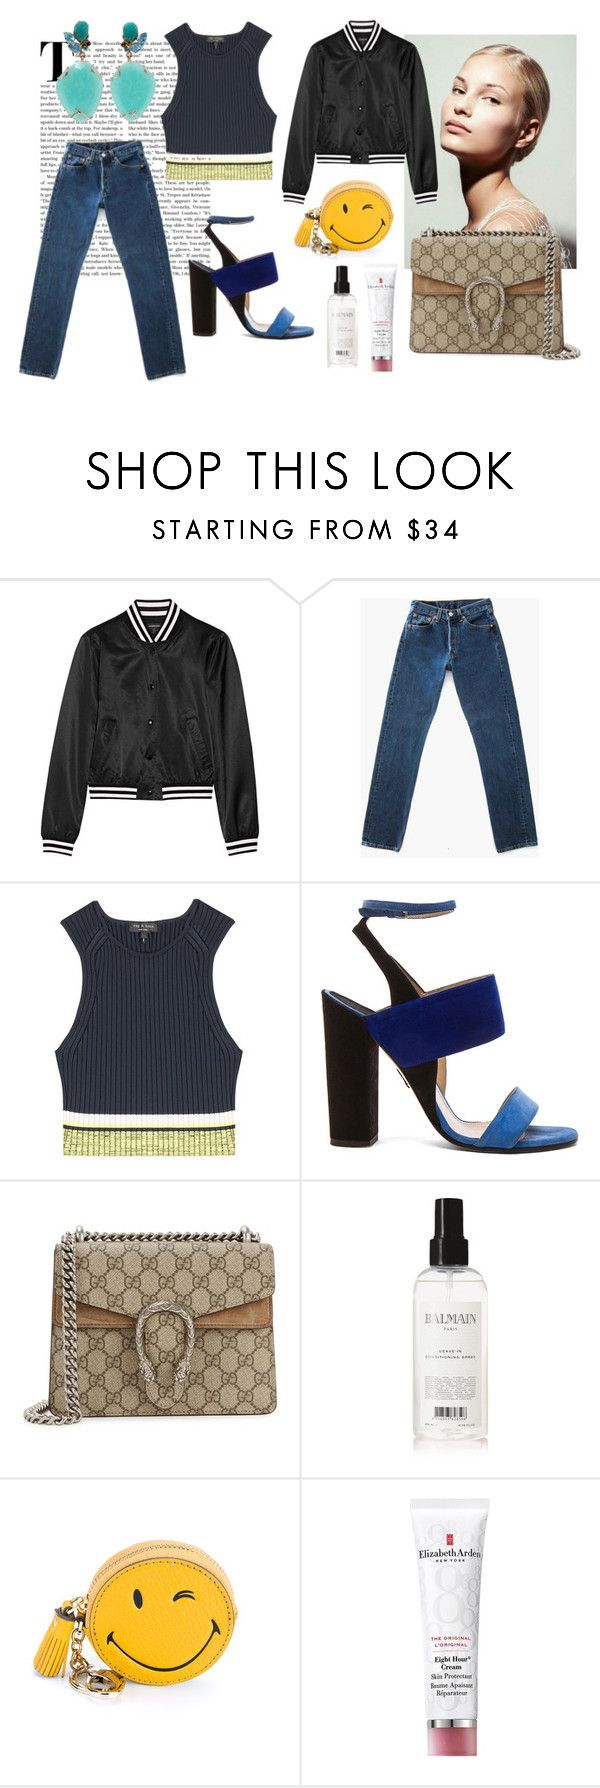 """""""Subtle colorblock"""" by jjanice on Polyvore featuring R13, Levi's, rag & bone, Paul Andrew, Gucci, Balmain, Anya Hindmarch, Elizabeth Arden and Federica Rettore"""